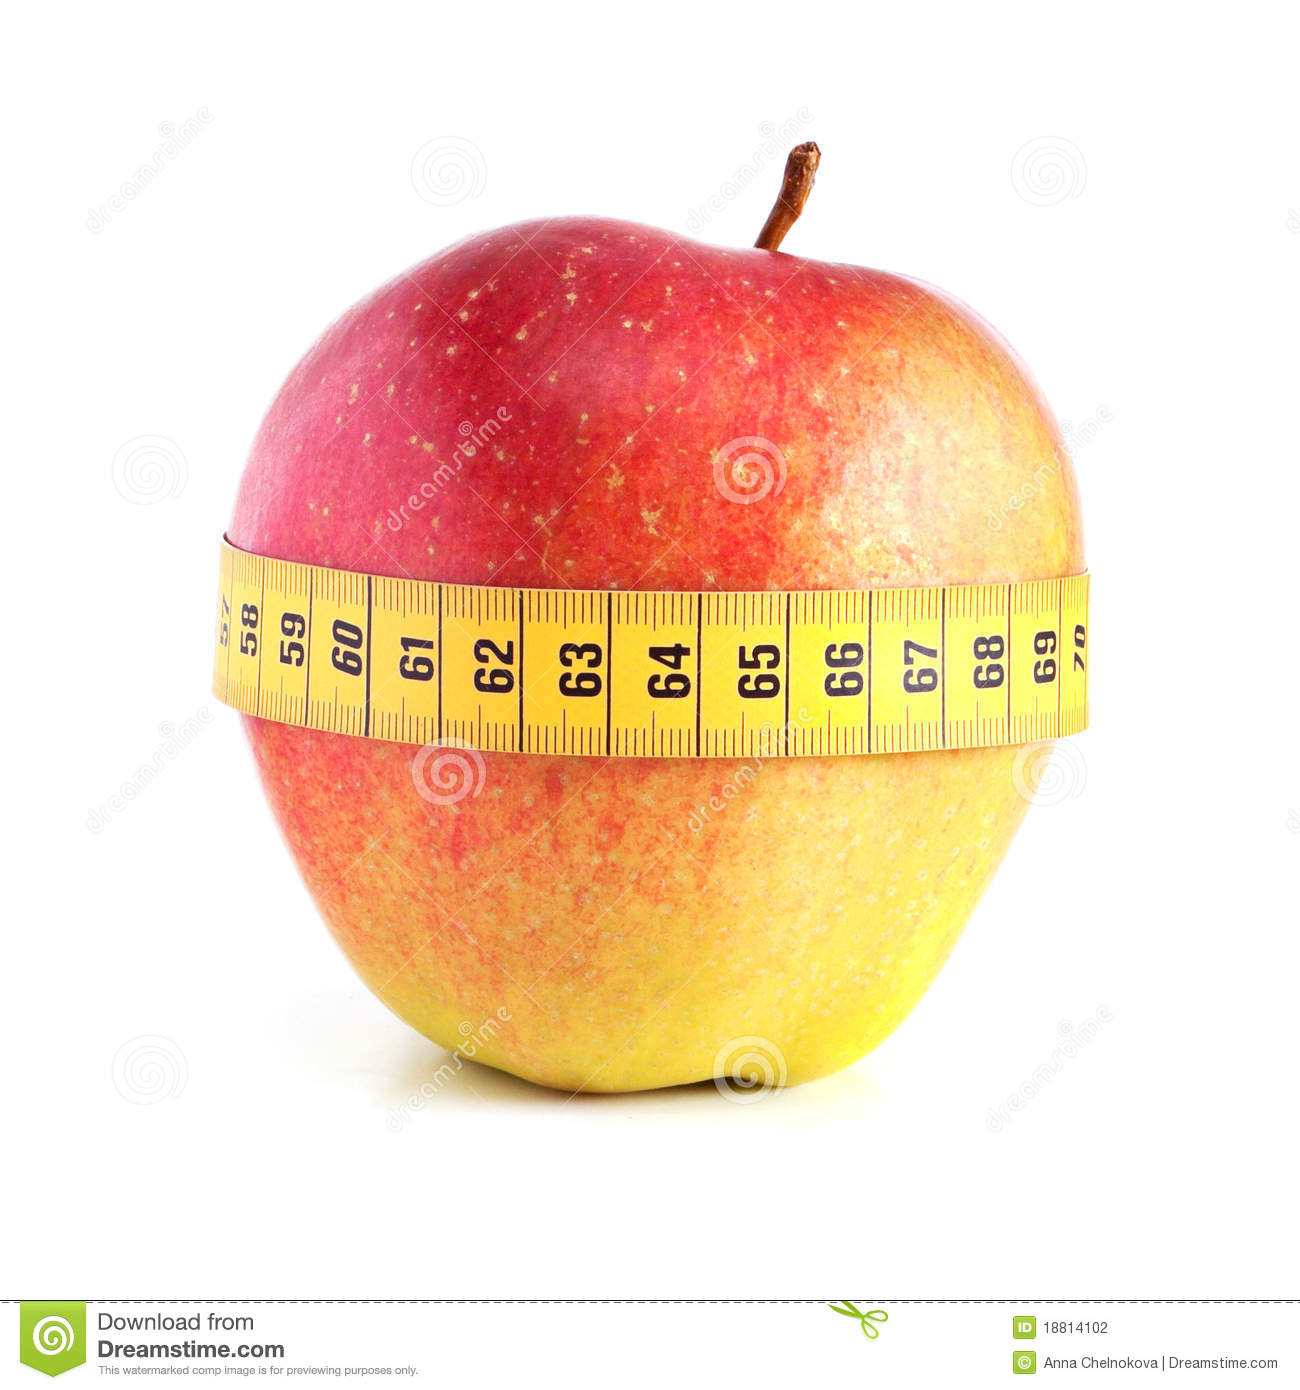 Red apple with measurement.